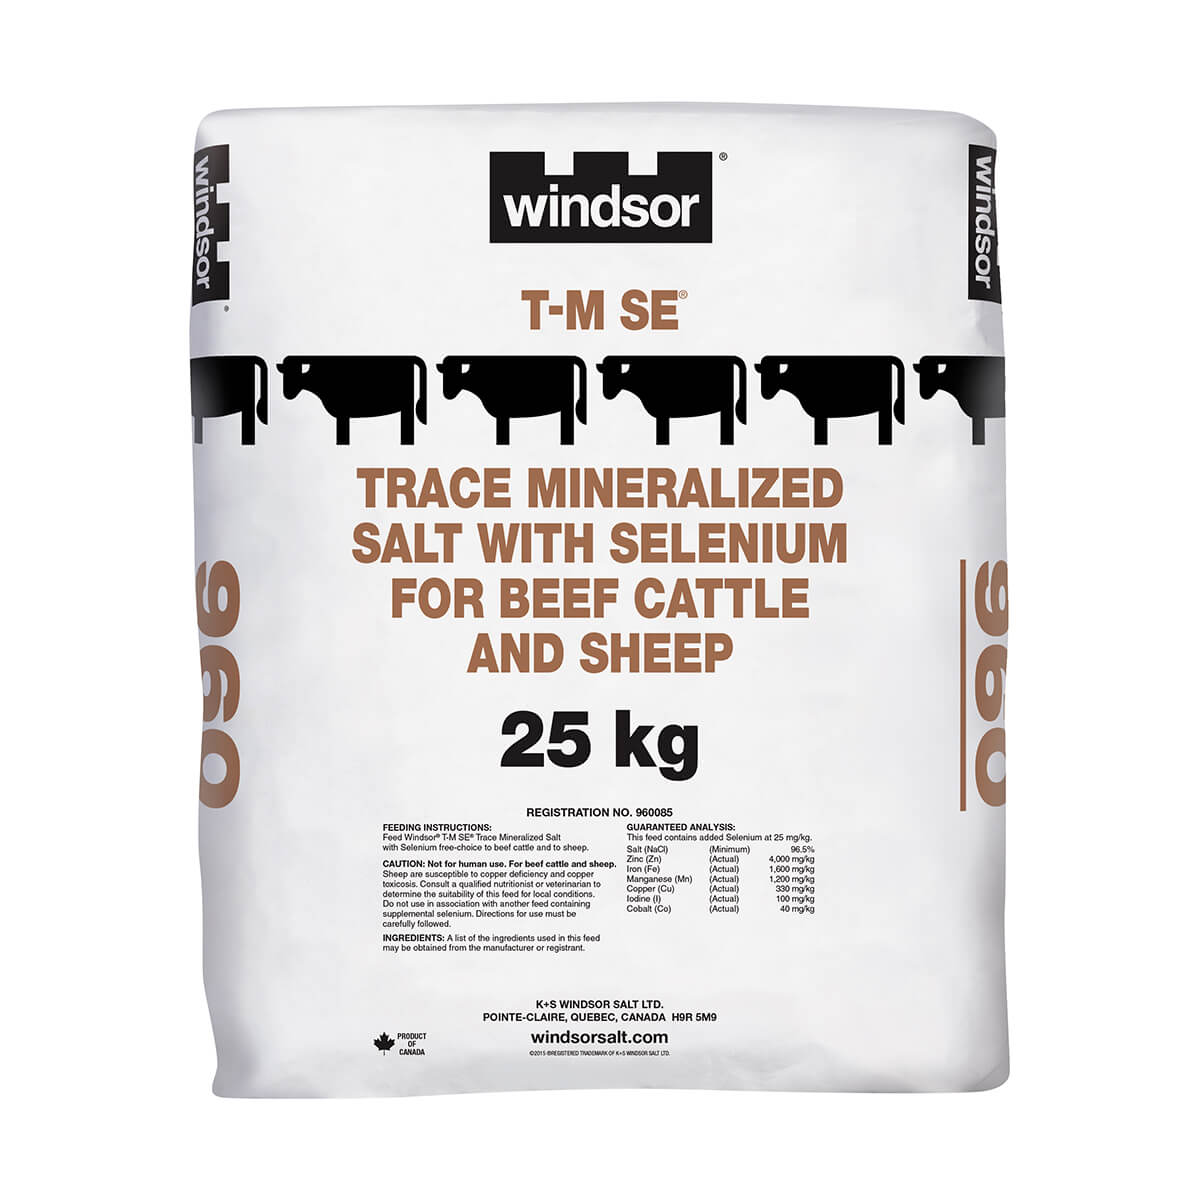 Windsor Trace Mineralized Stock Salt - T.M. Sel. - 25 kg - Bag